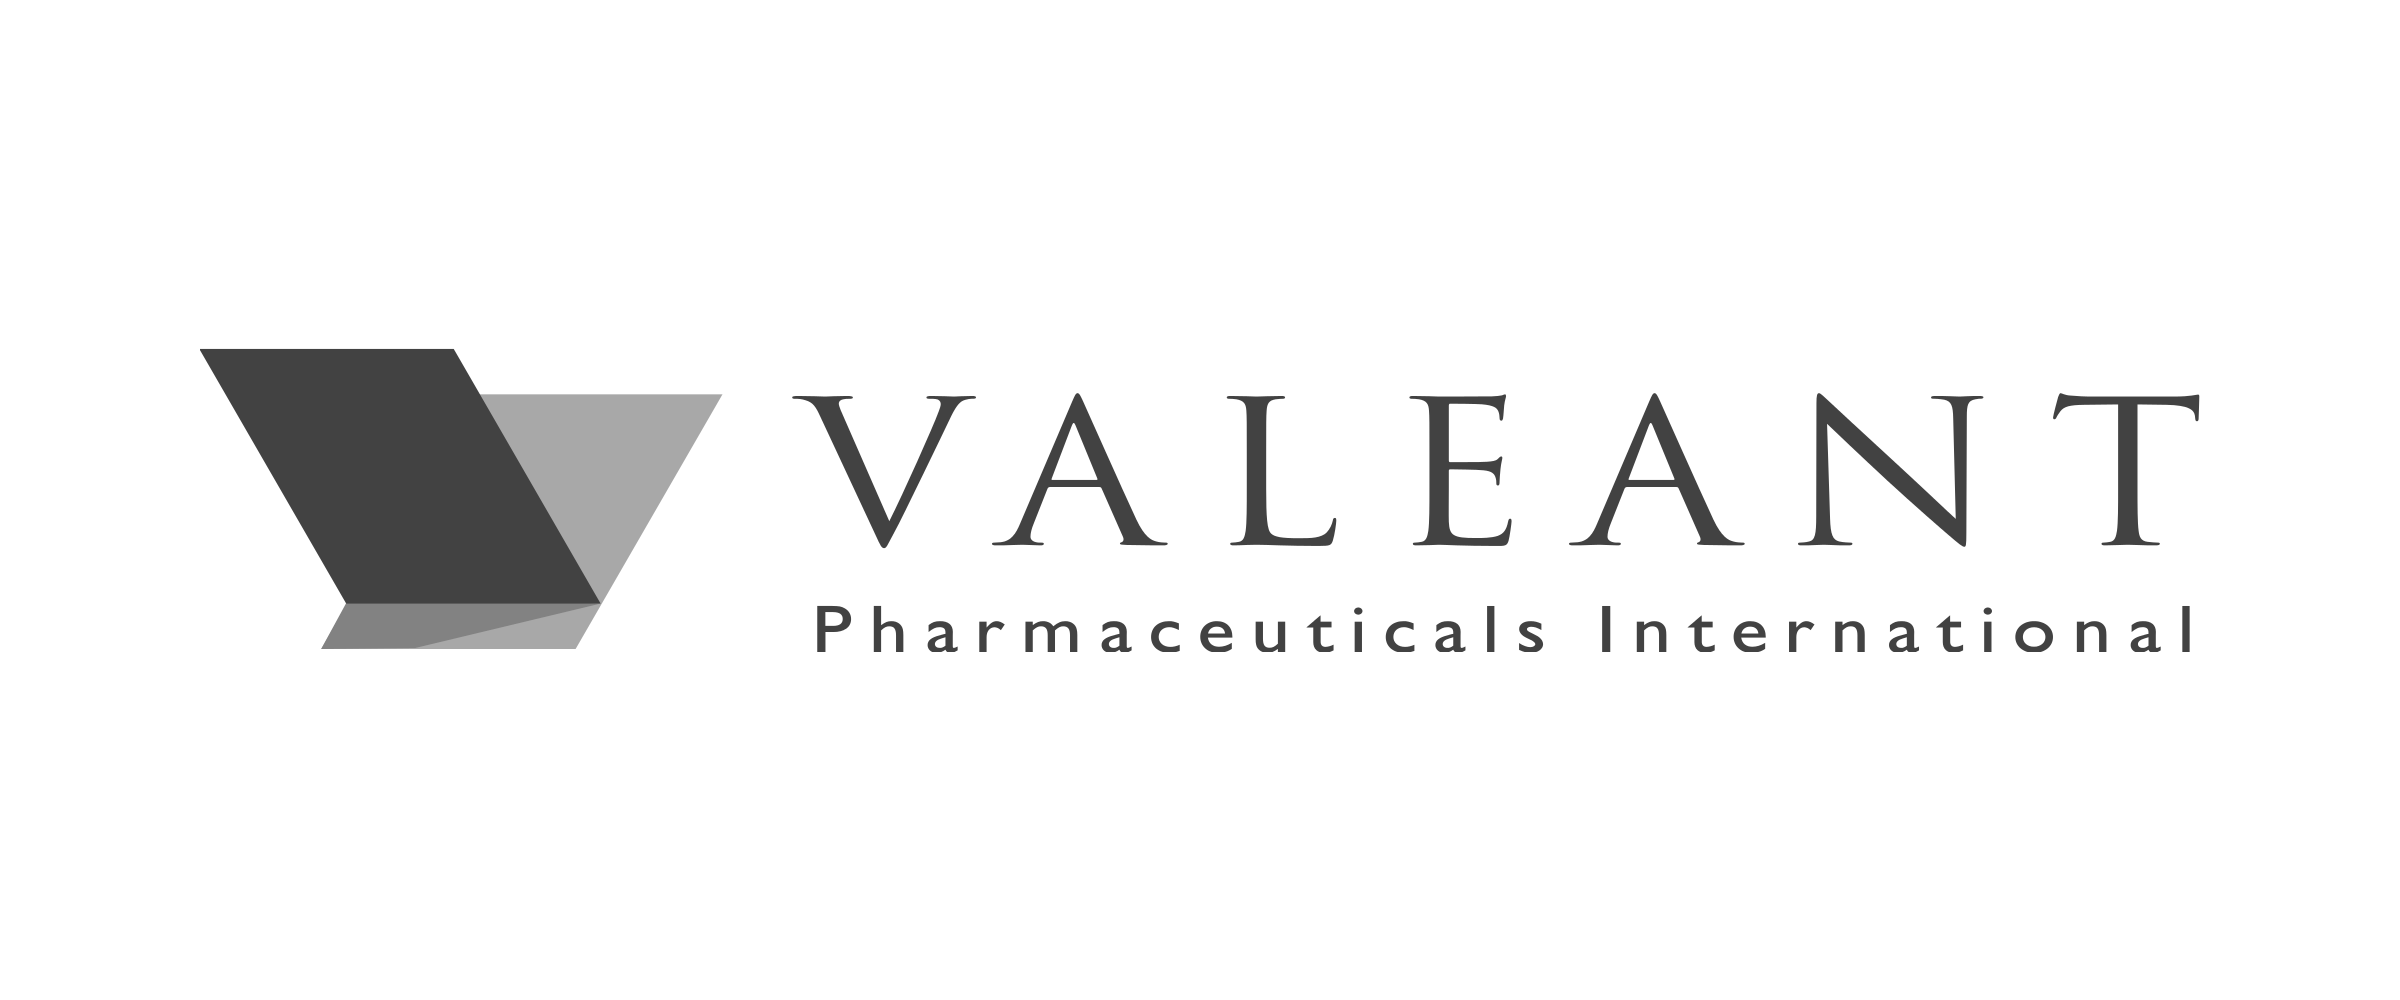 Valeant.png